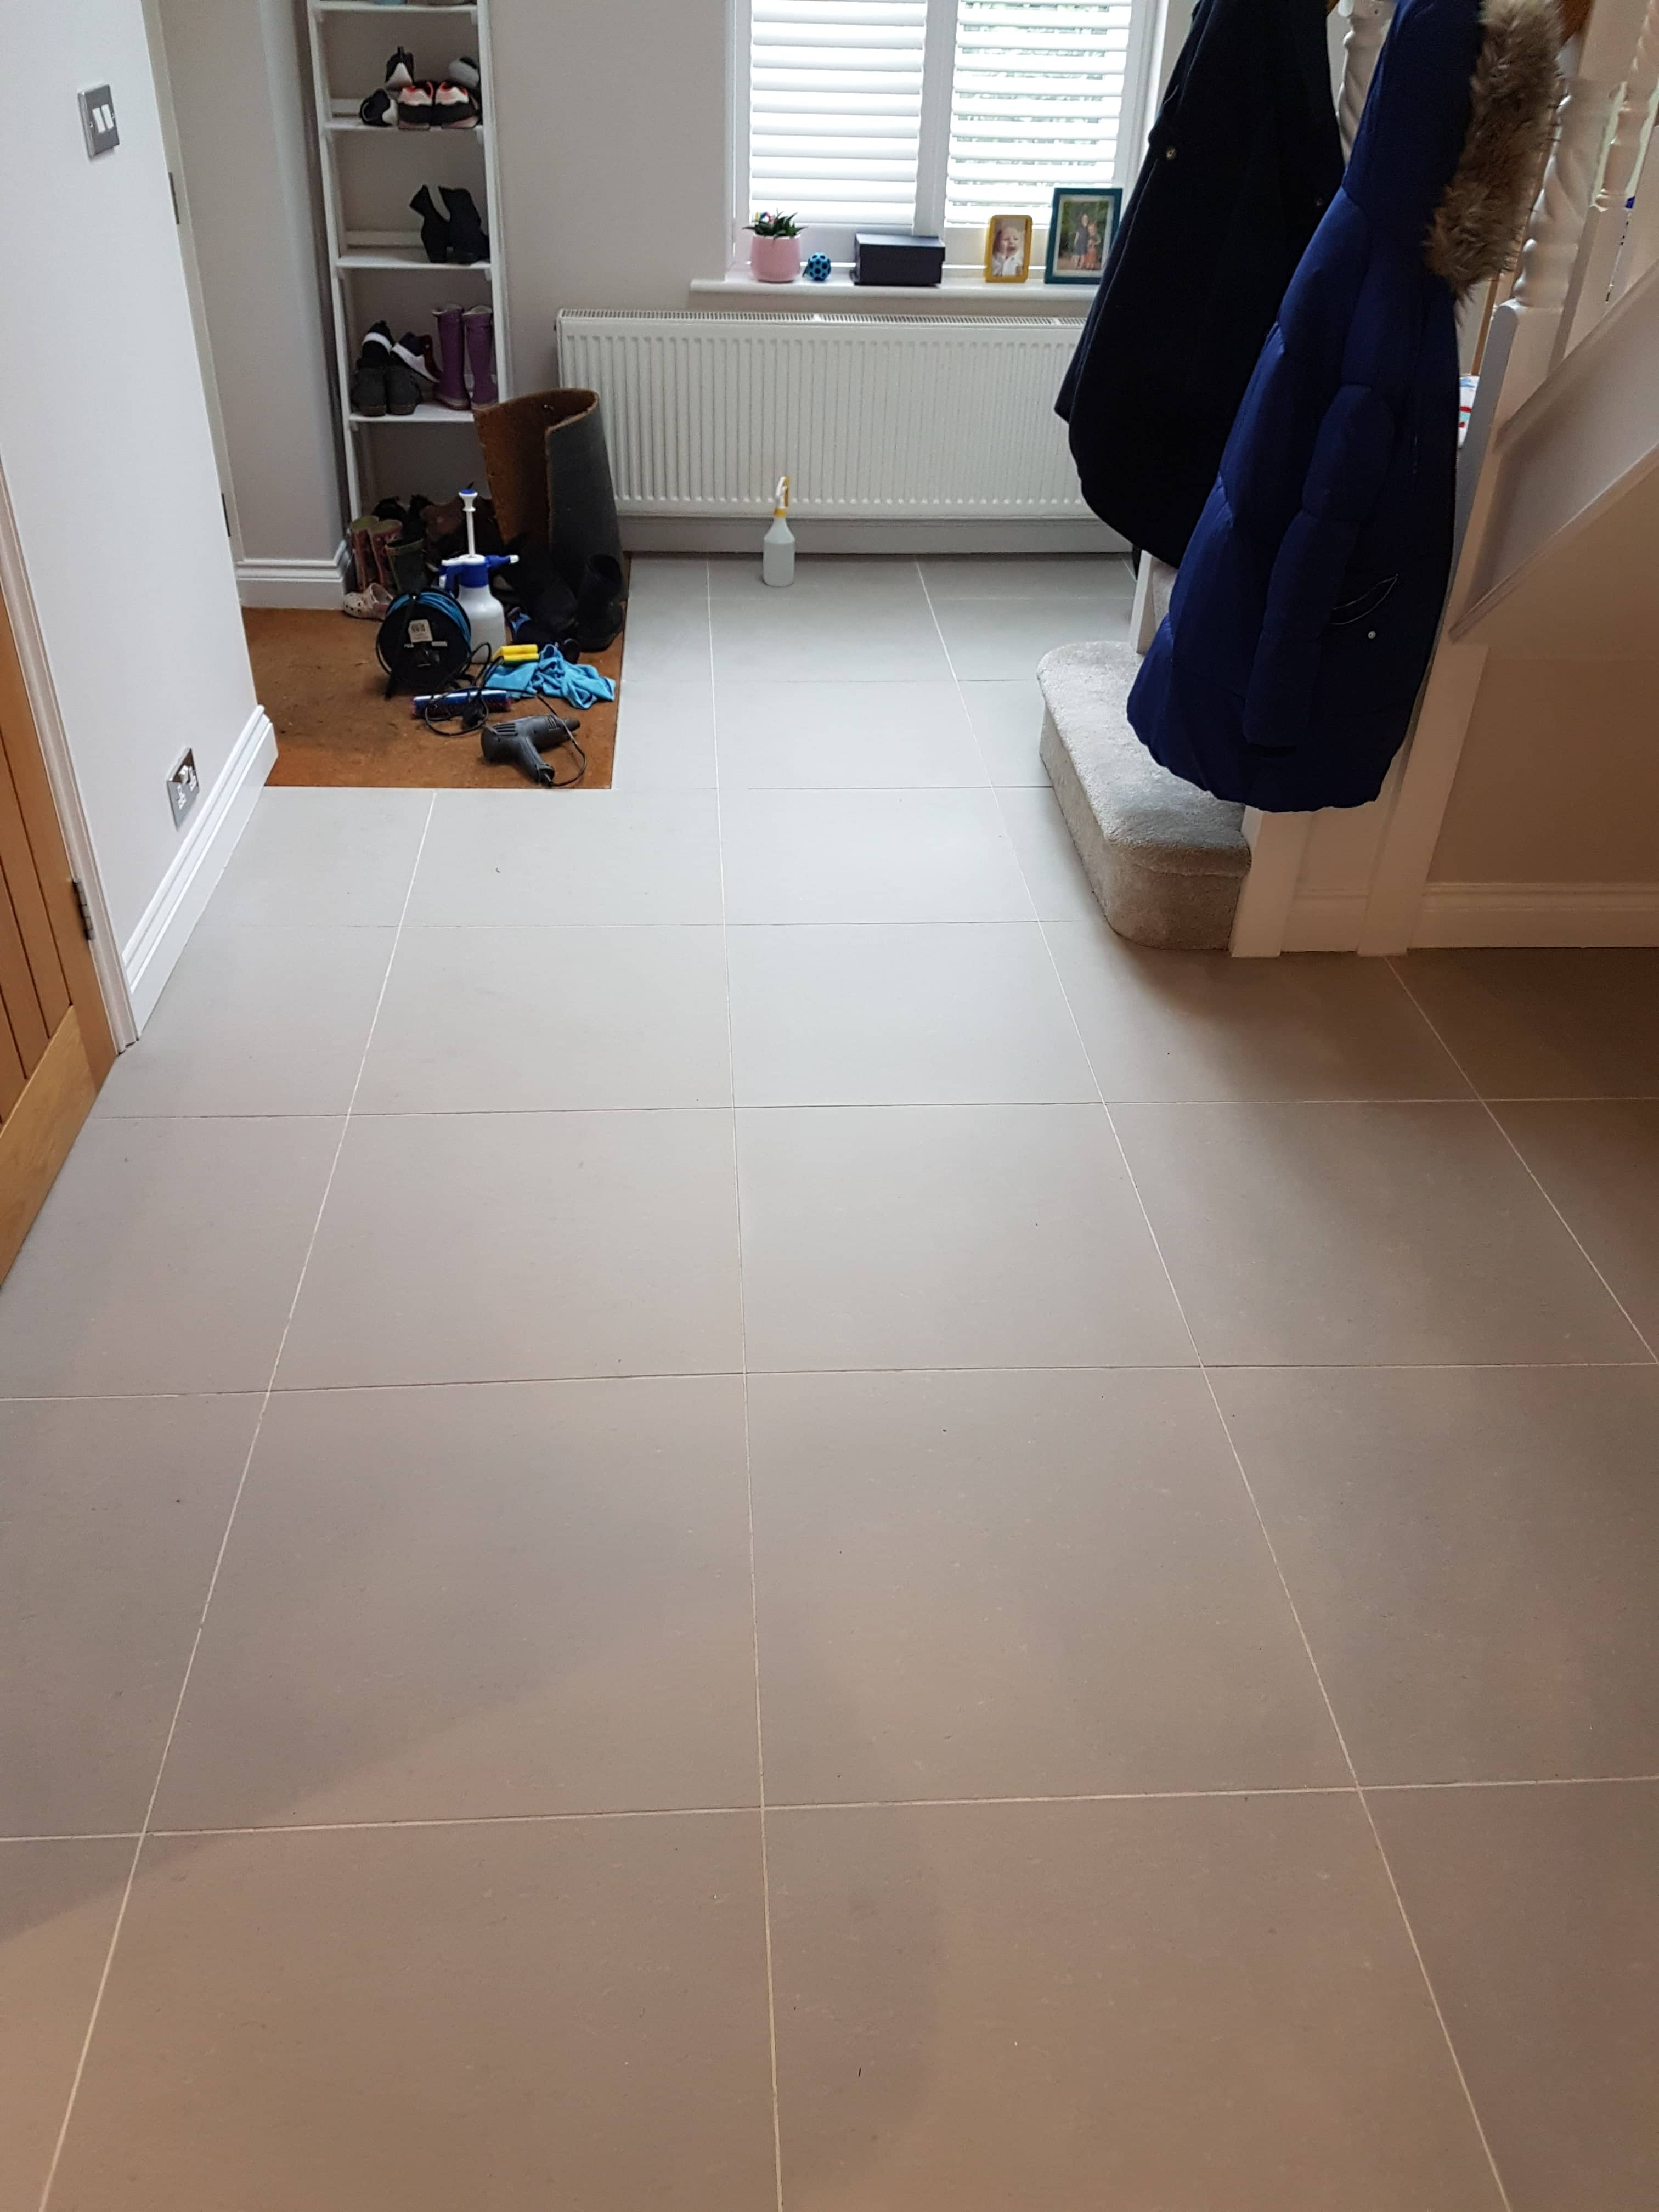 Porcelain Tile and Grout After Cleaning